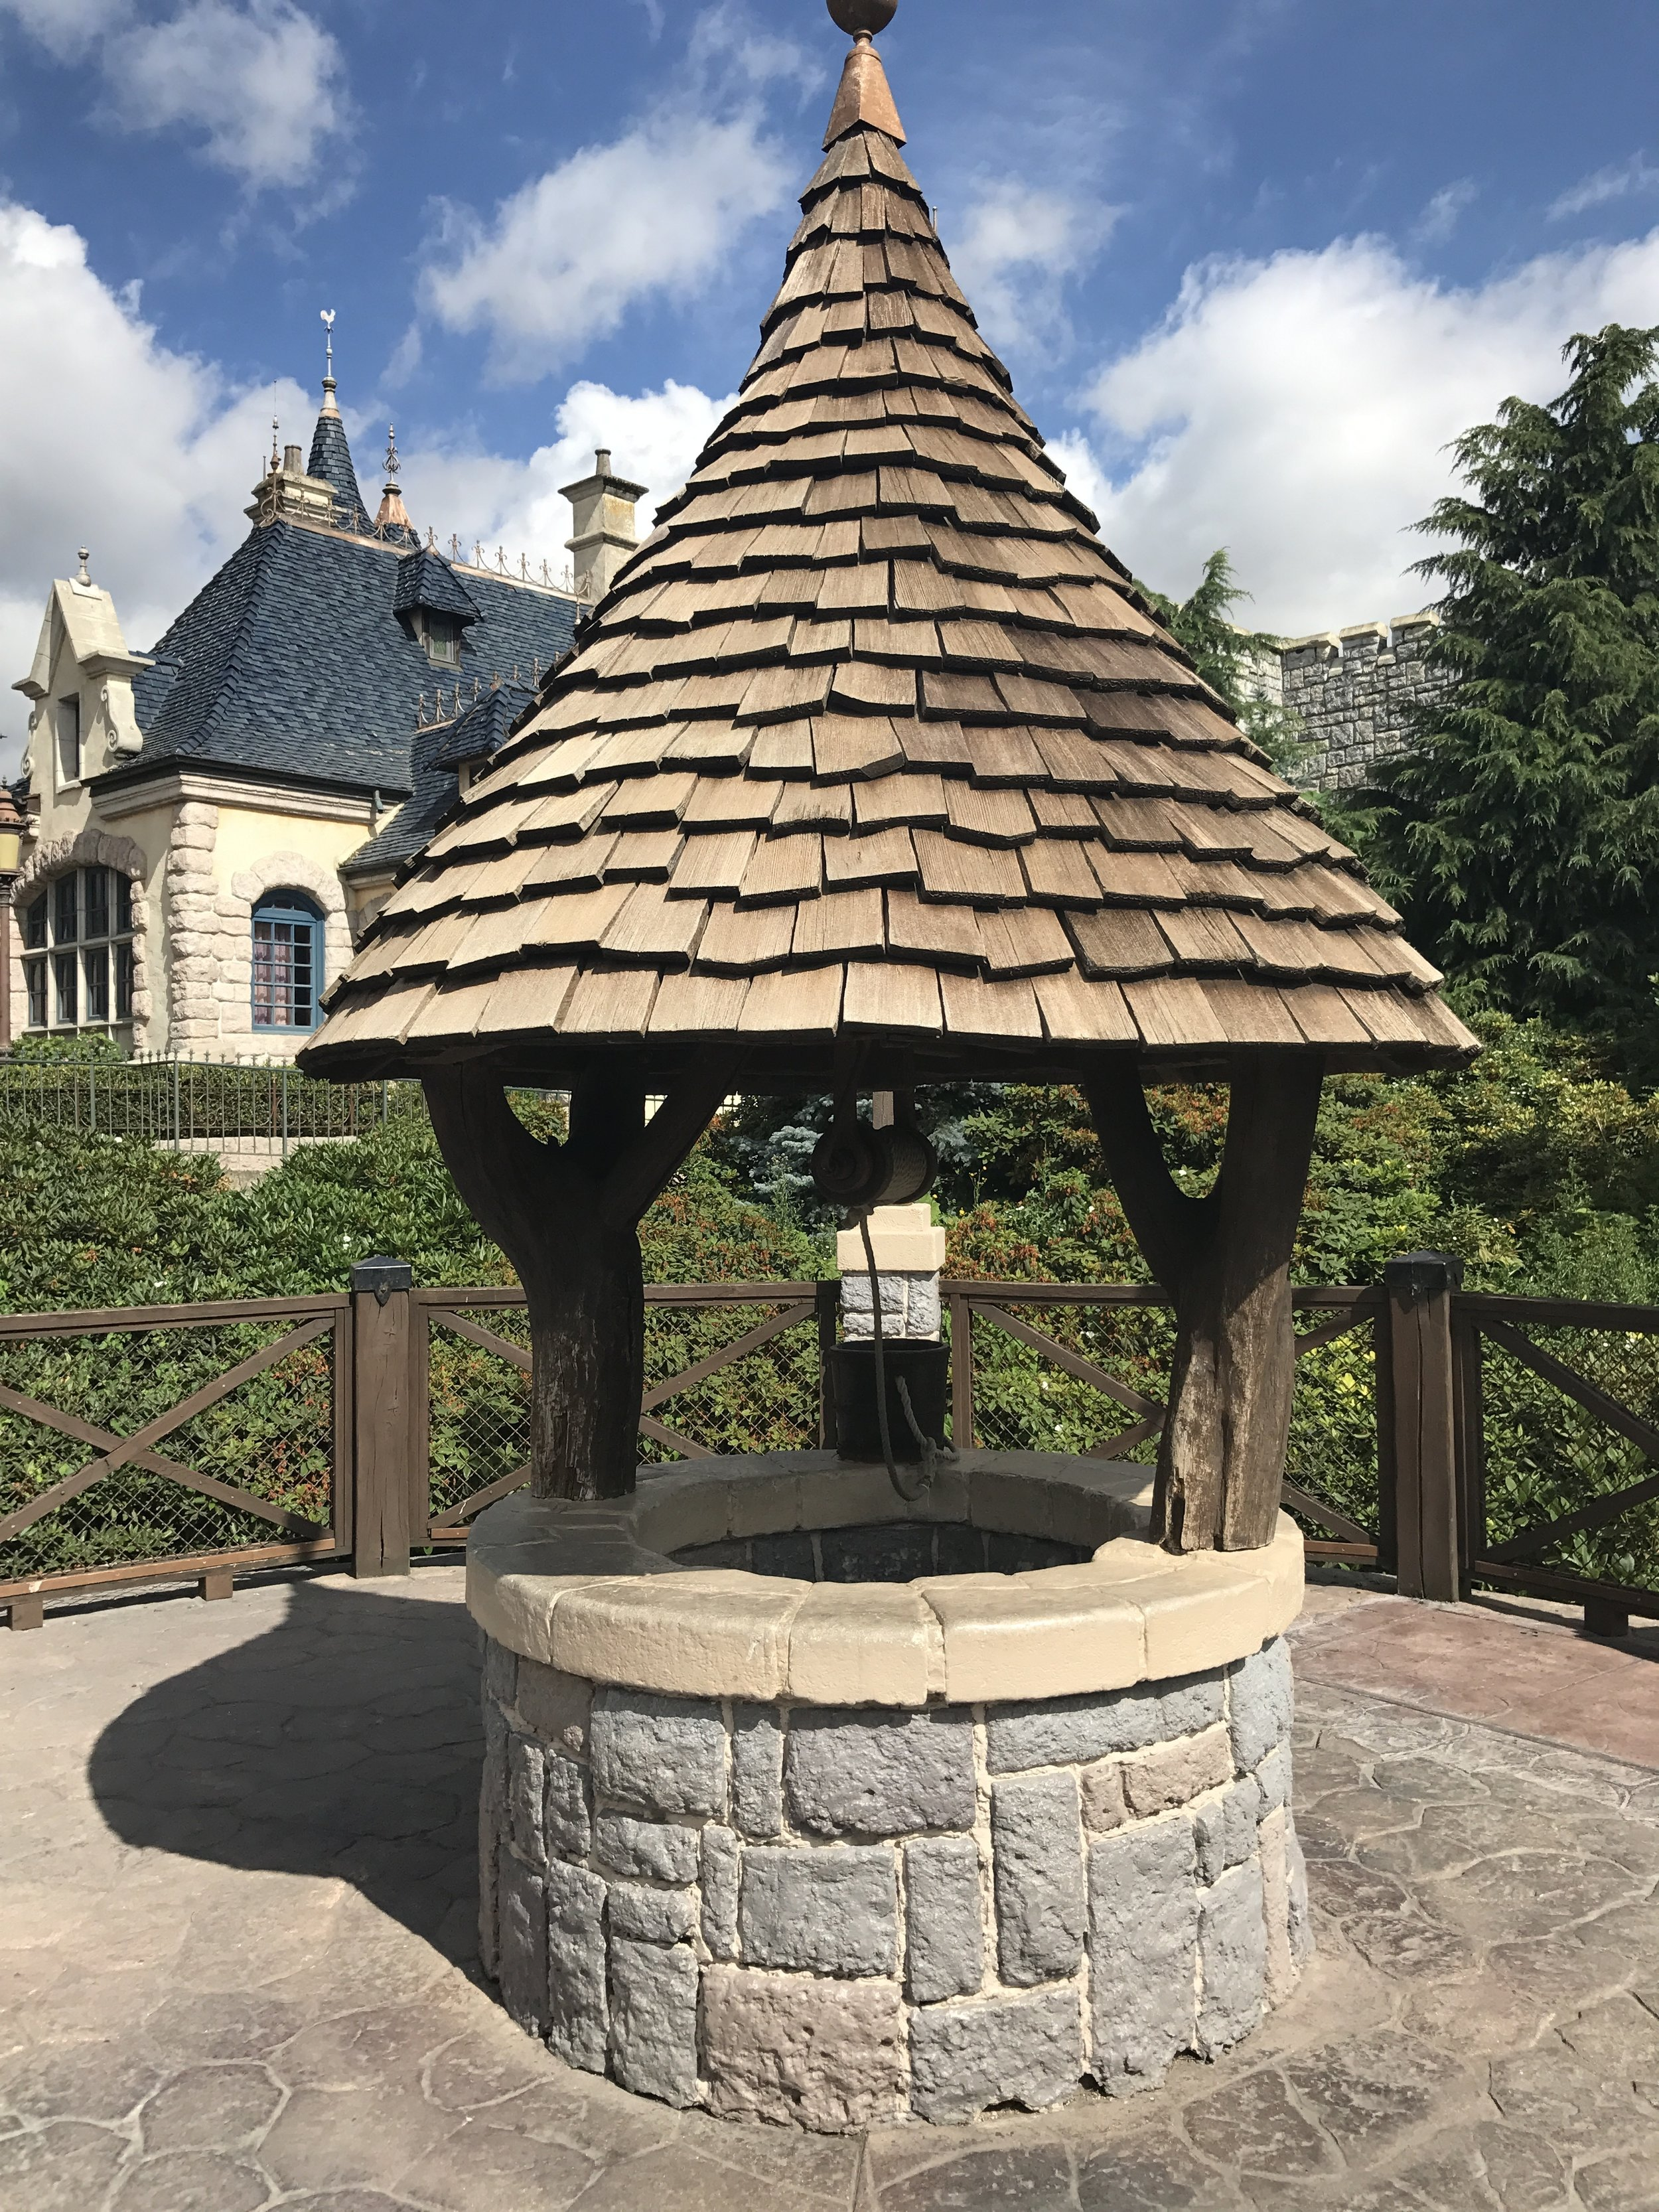 Wanna know a secret? Promise not to tell? We are standing by a wishing well.